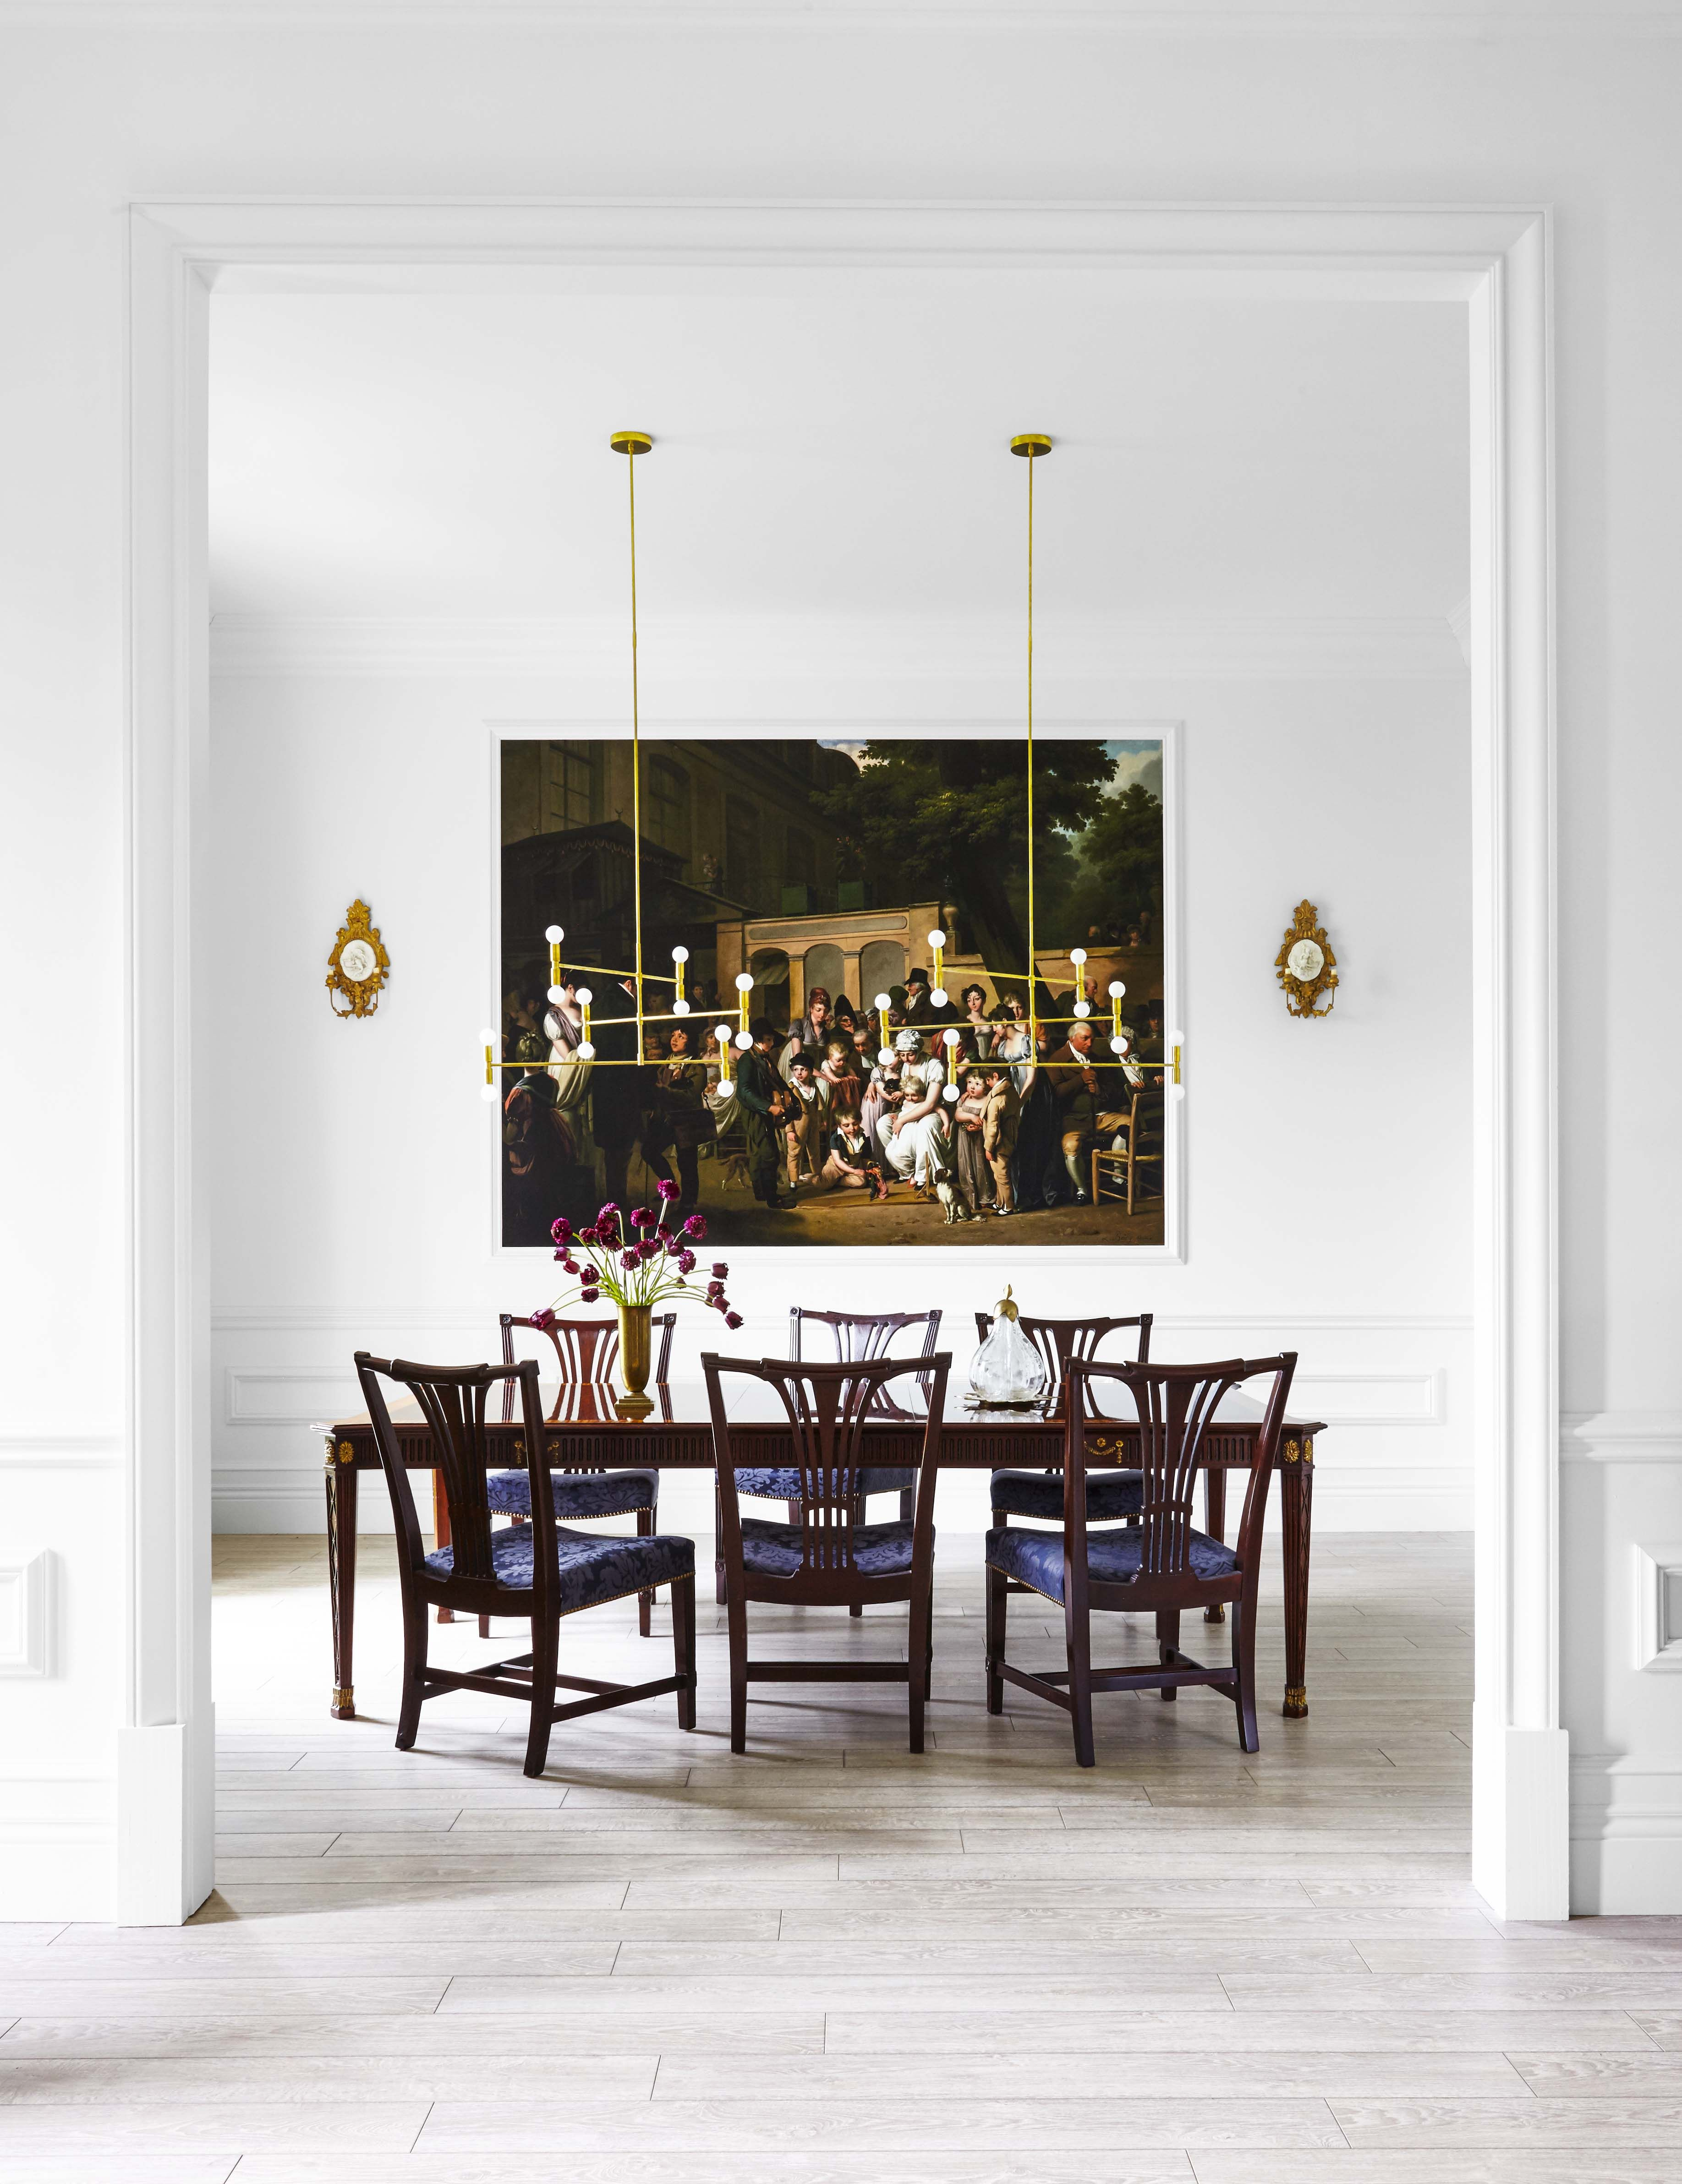 Wall-Sized Murals Steal the Show in This Raji RM-Designed Home